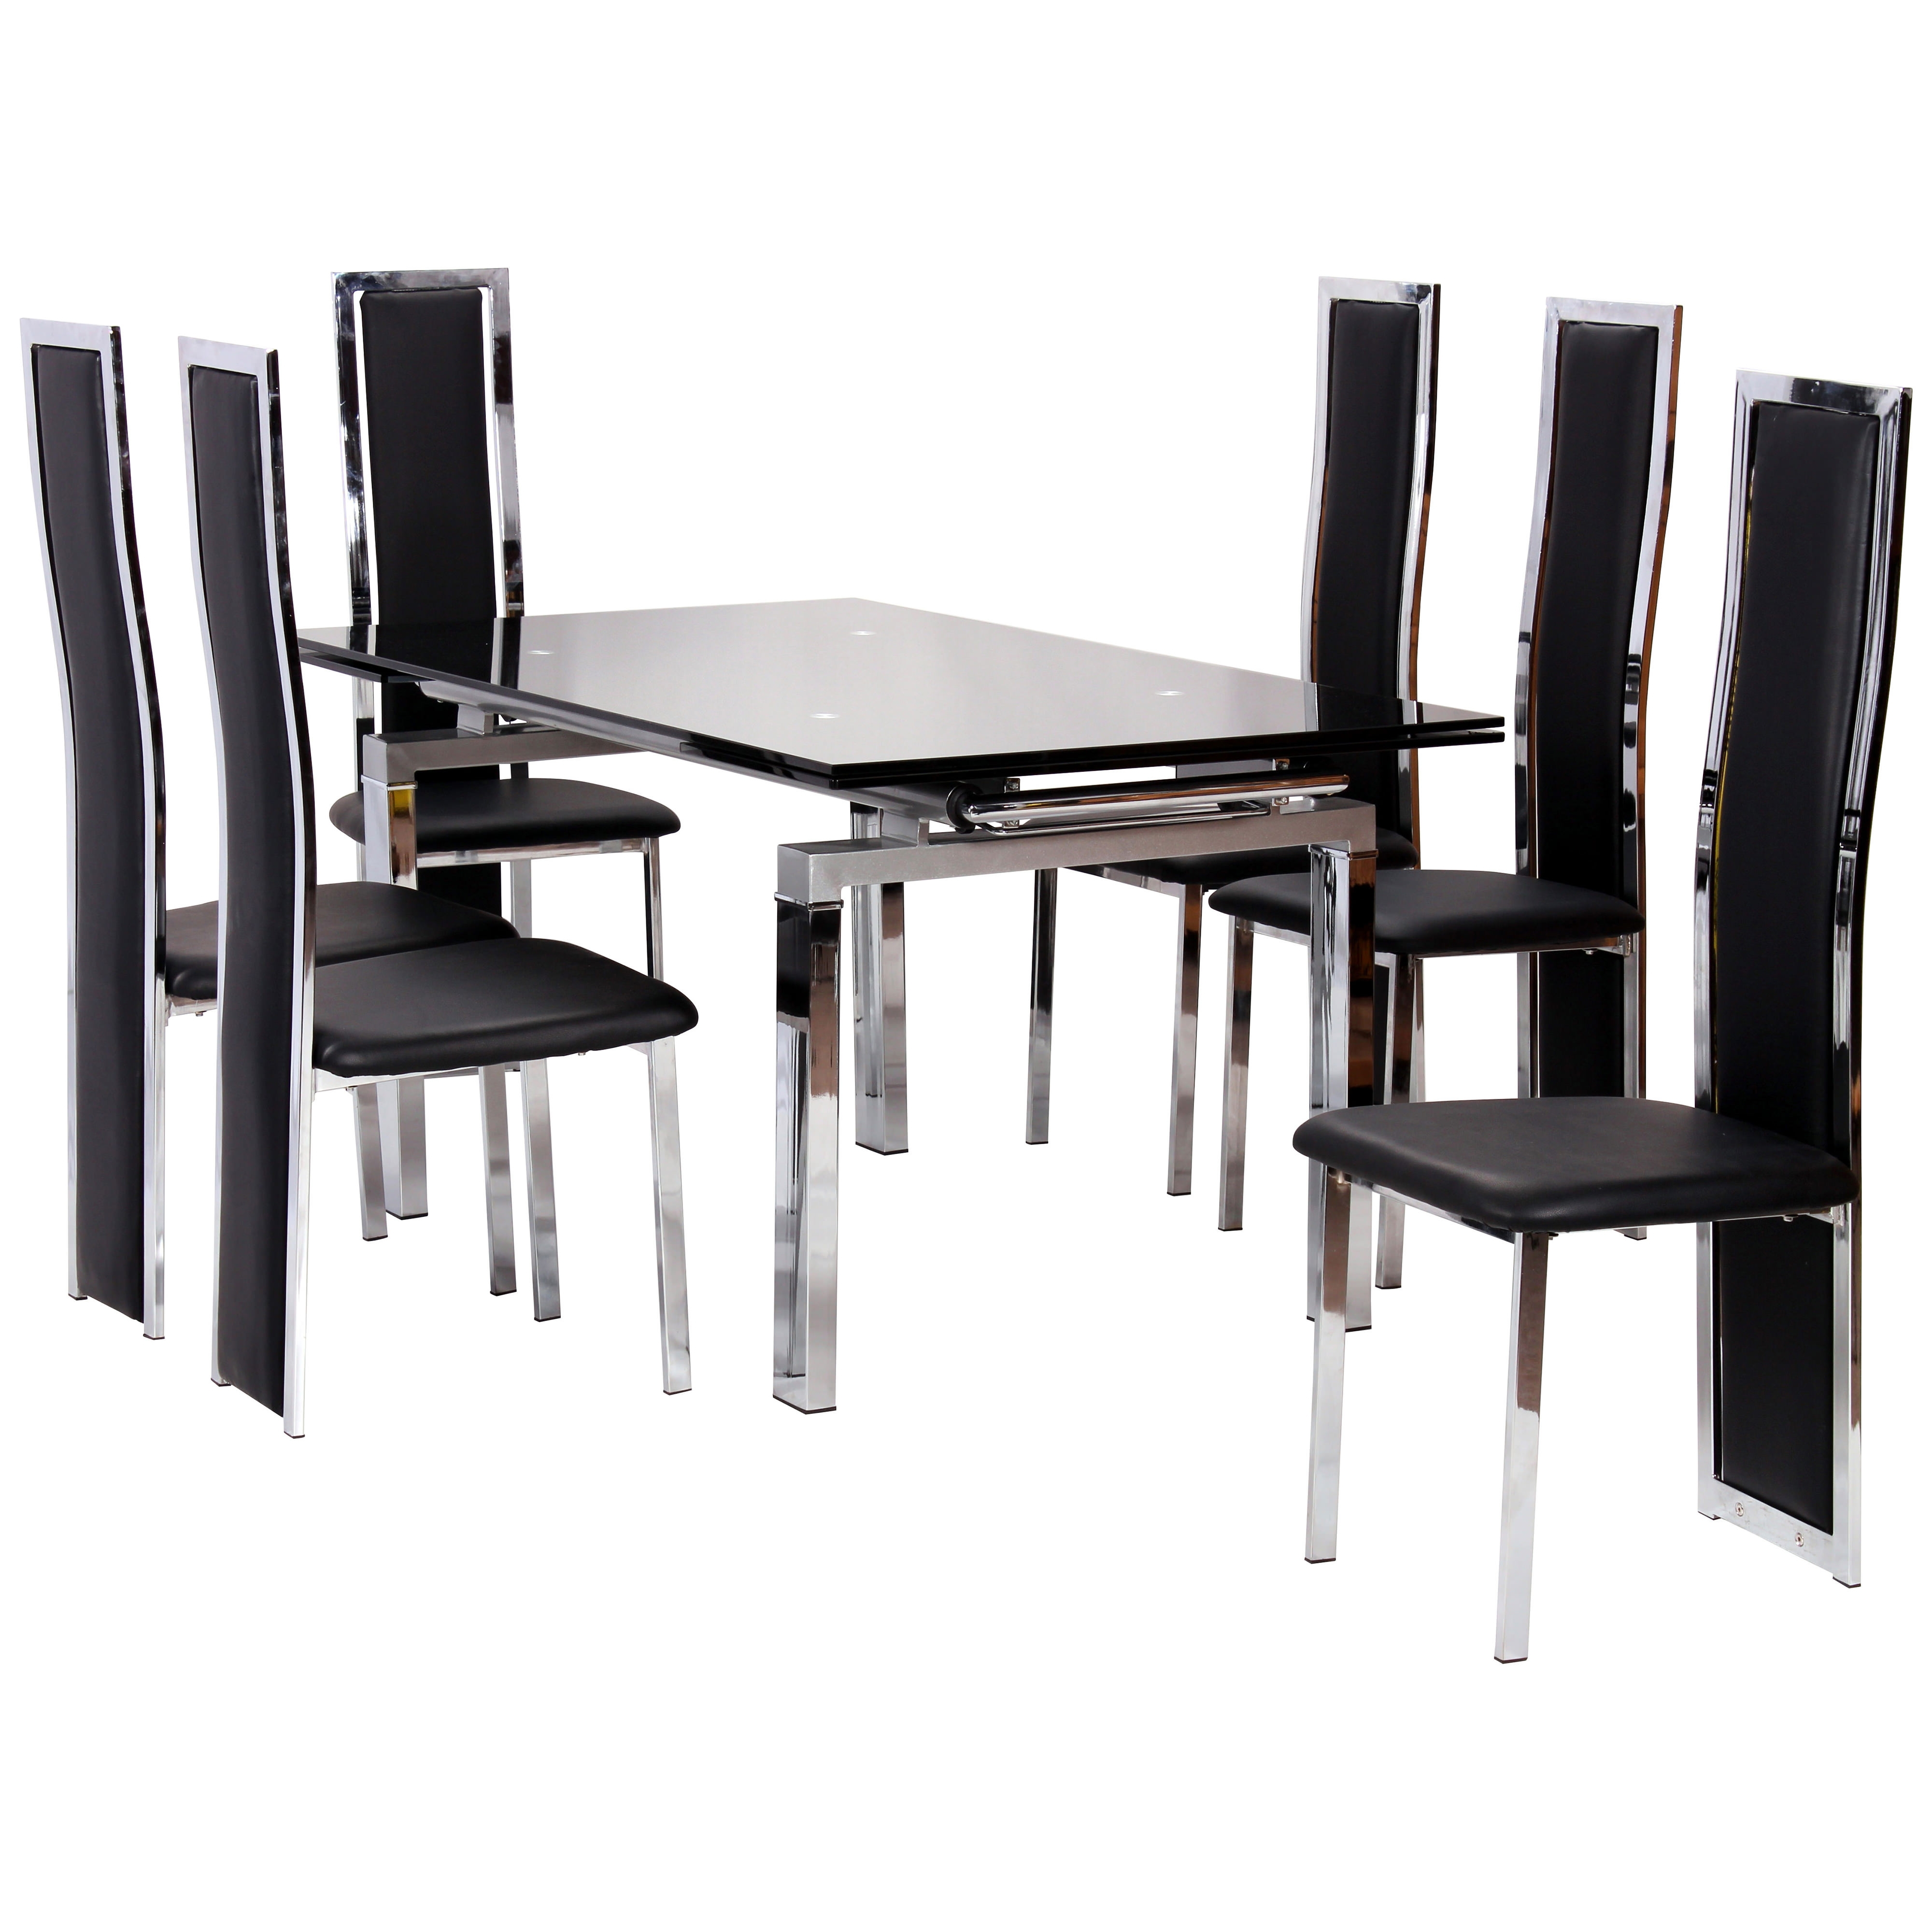 Chrome & Glass Extending Dining Table And Chair Set With 6 Seats Pertaining To Most Recently Released Glass Extendable Dining Tables And 6 Chairs (Gallery 15 of 25)